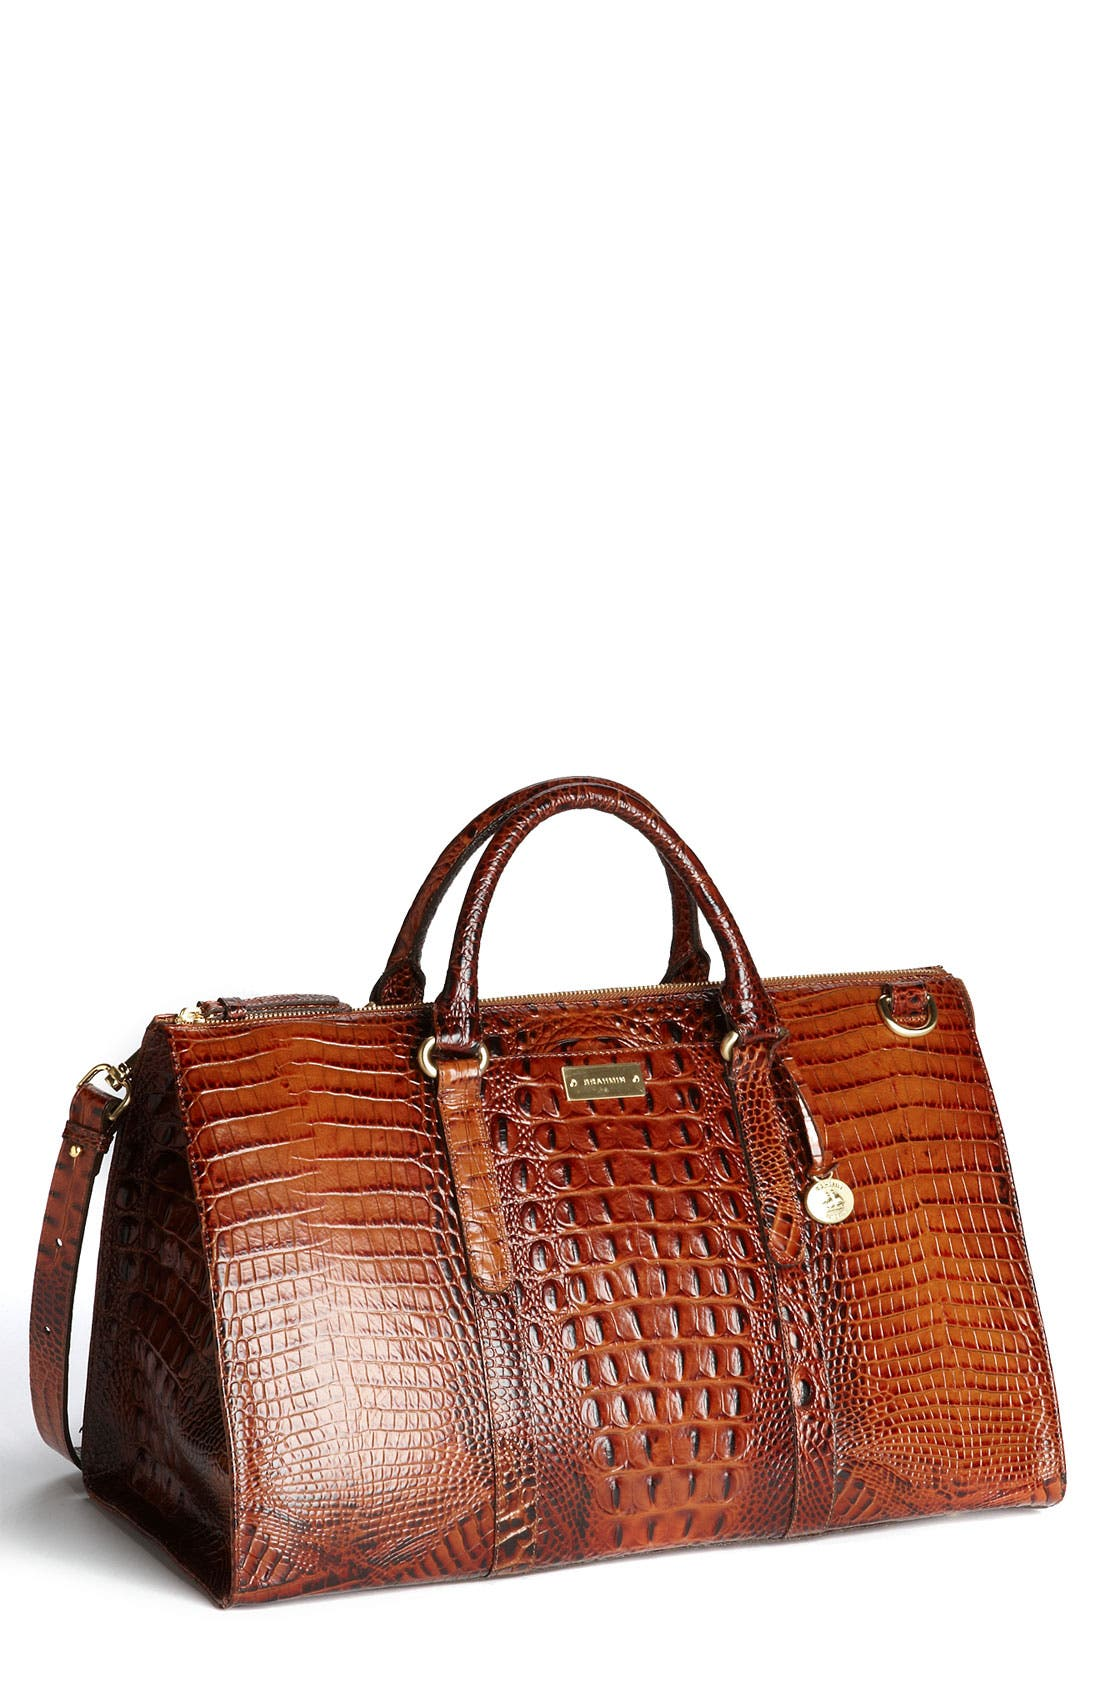 Alternate Image 1 Selected - Brahmin 'Anywhere' Weekend Bag